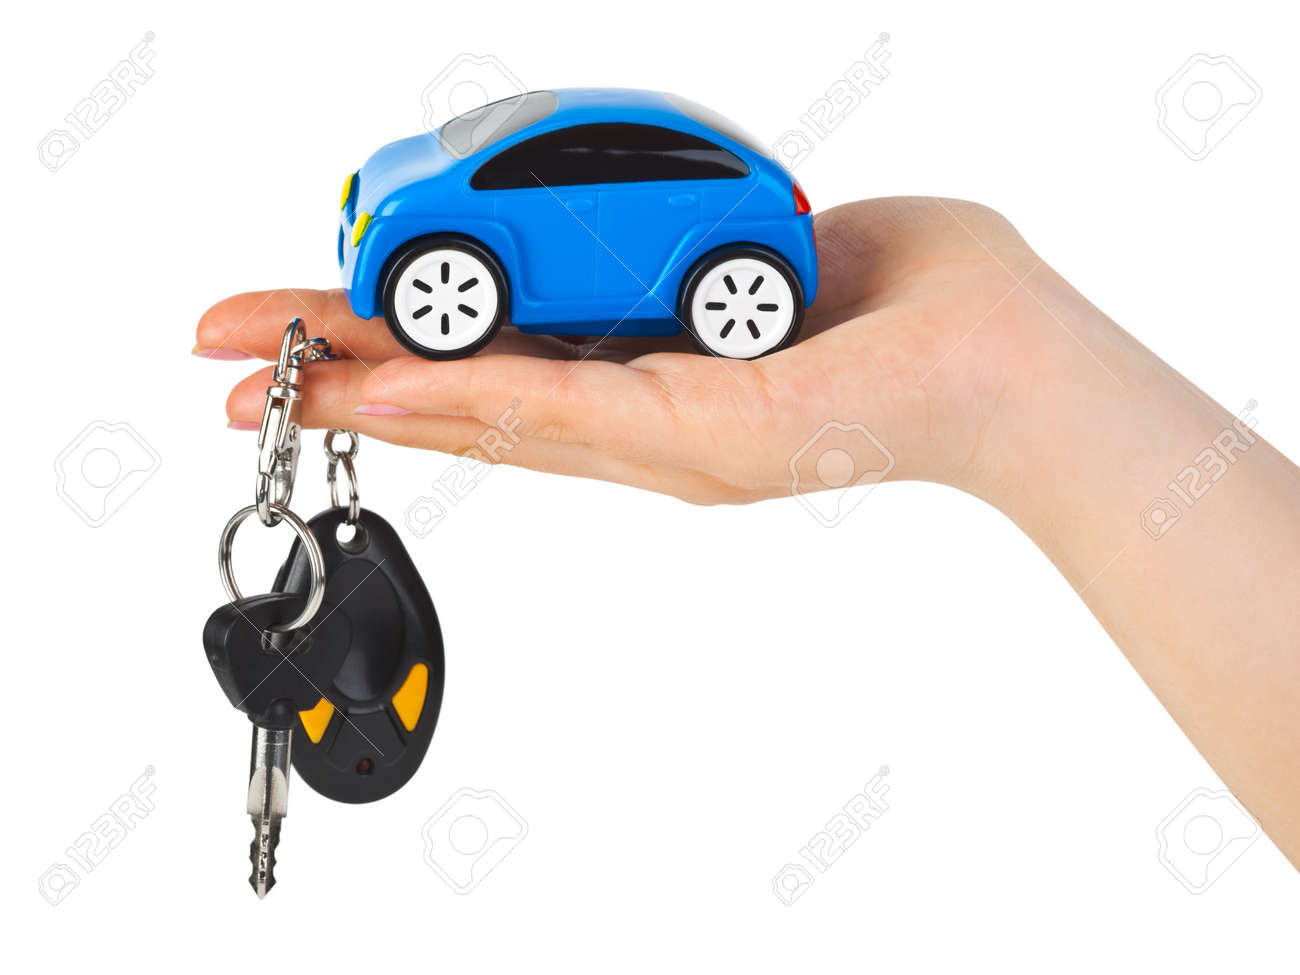 Hand with keys and car isolated on white background Stock Photo - 7698576